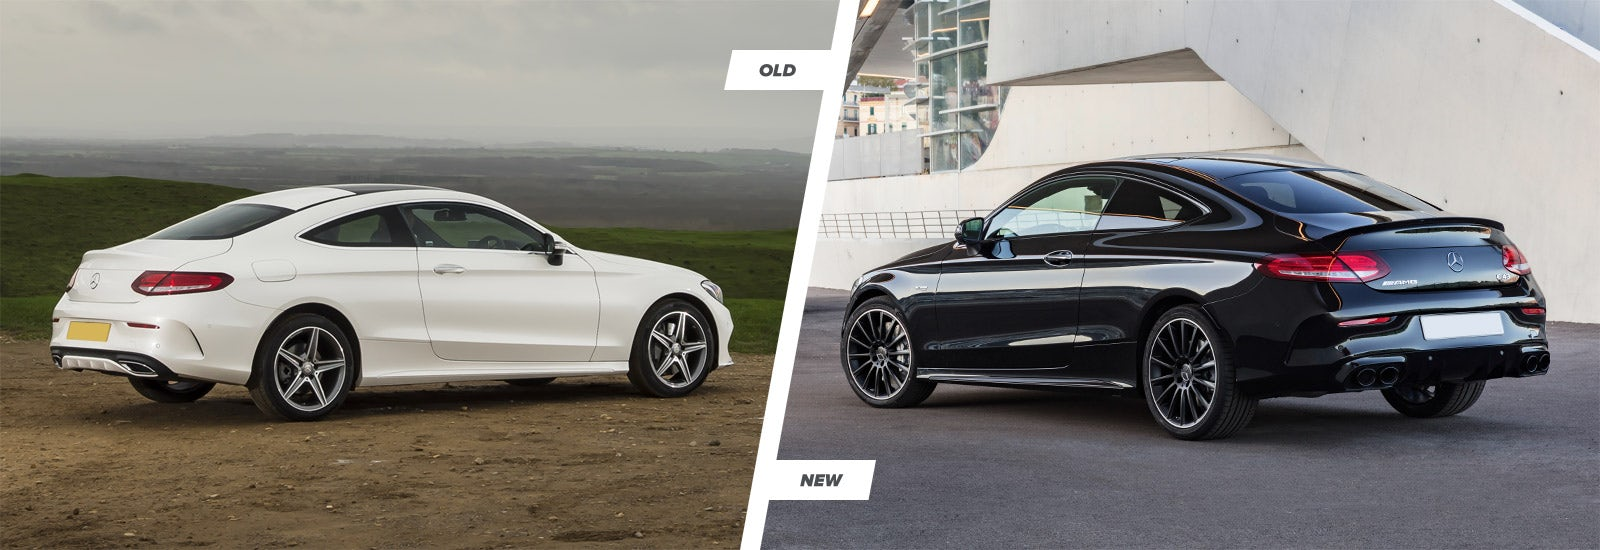 Mercedes c class facelift price specs and release date - Mercedes c class coupe specifications ...